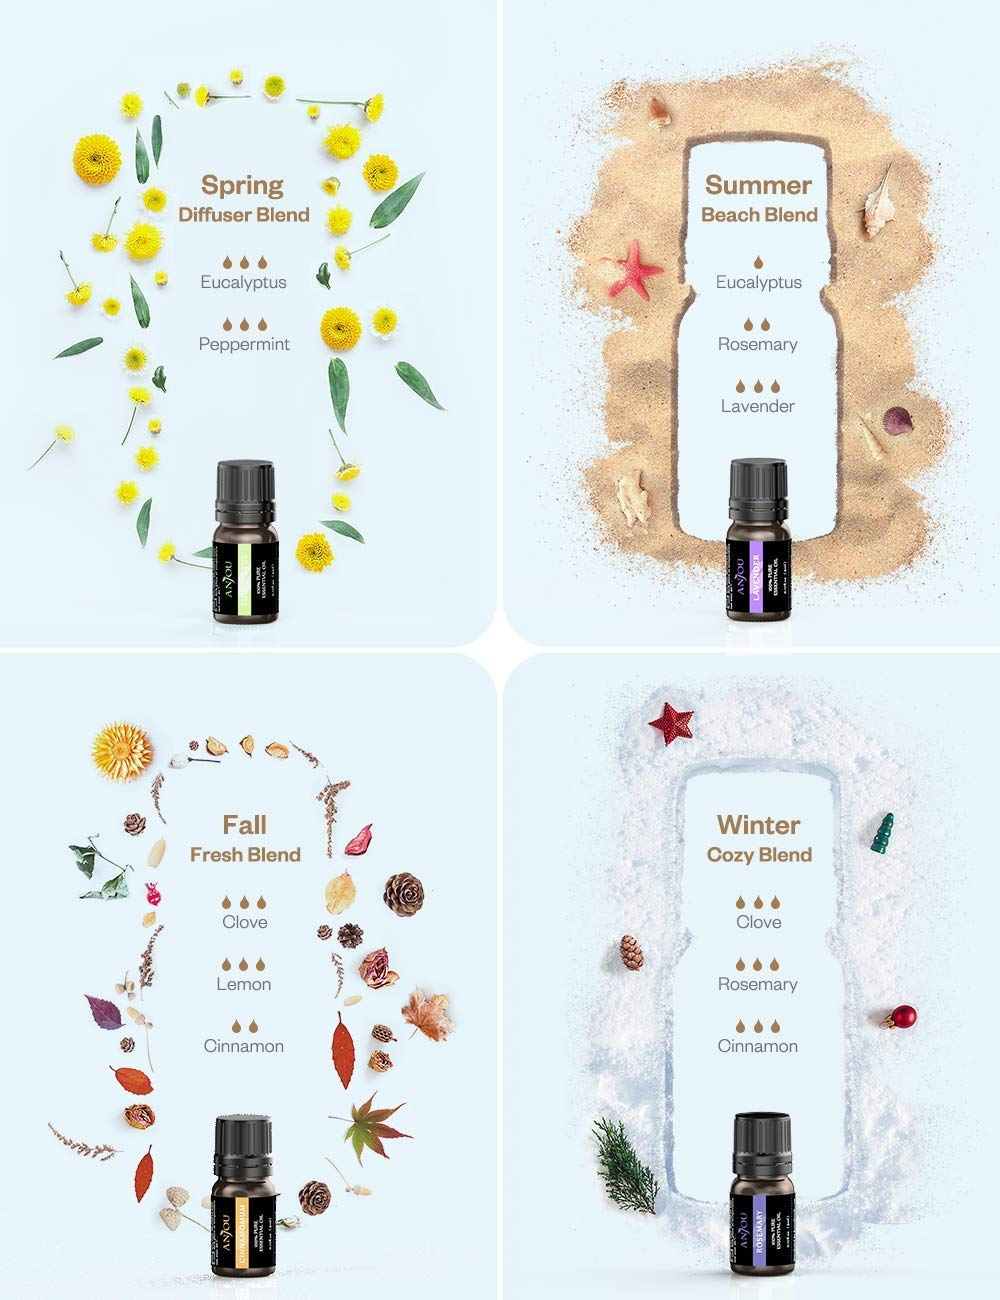 Essential Oils, Anjou 18PCS Aromatherapy Oil Upgraded Gift Set Pure & Therapeutic Grade, Popular Fragrance Oils Blends for Diffuser Air Fresher Home Office SPA Auto